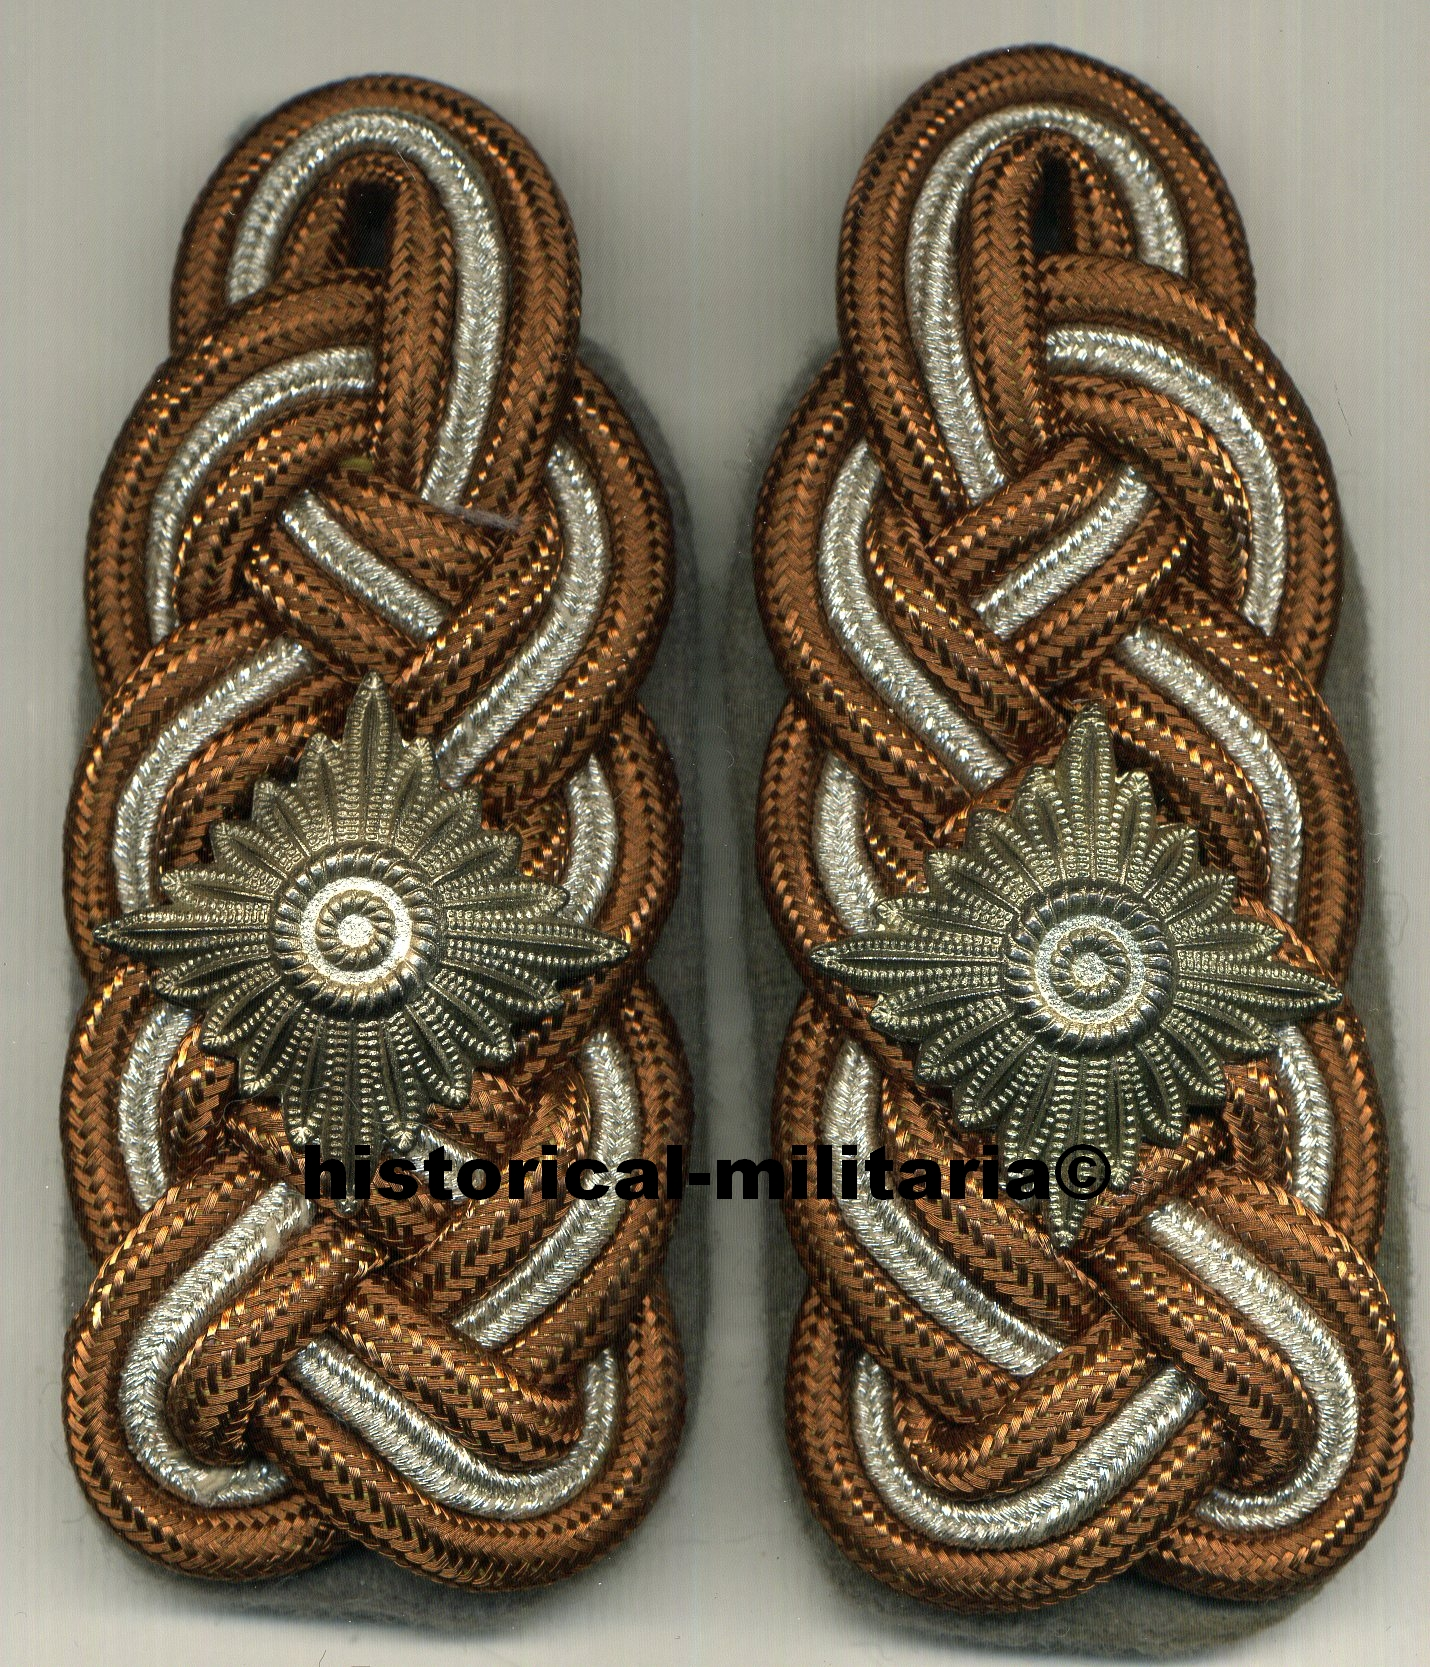 Waffen-SS SS-Gruppenführer slip-on aged shoulder boards SS-Gruppenführer Schulterklappen with large sized AGED General Officer's pips - Major General SS - spalline da Generale di Divisione della Waffen-SS